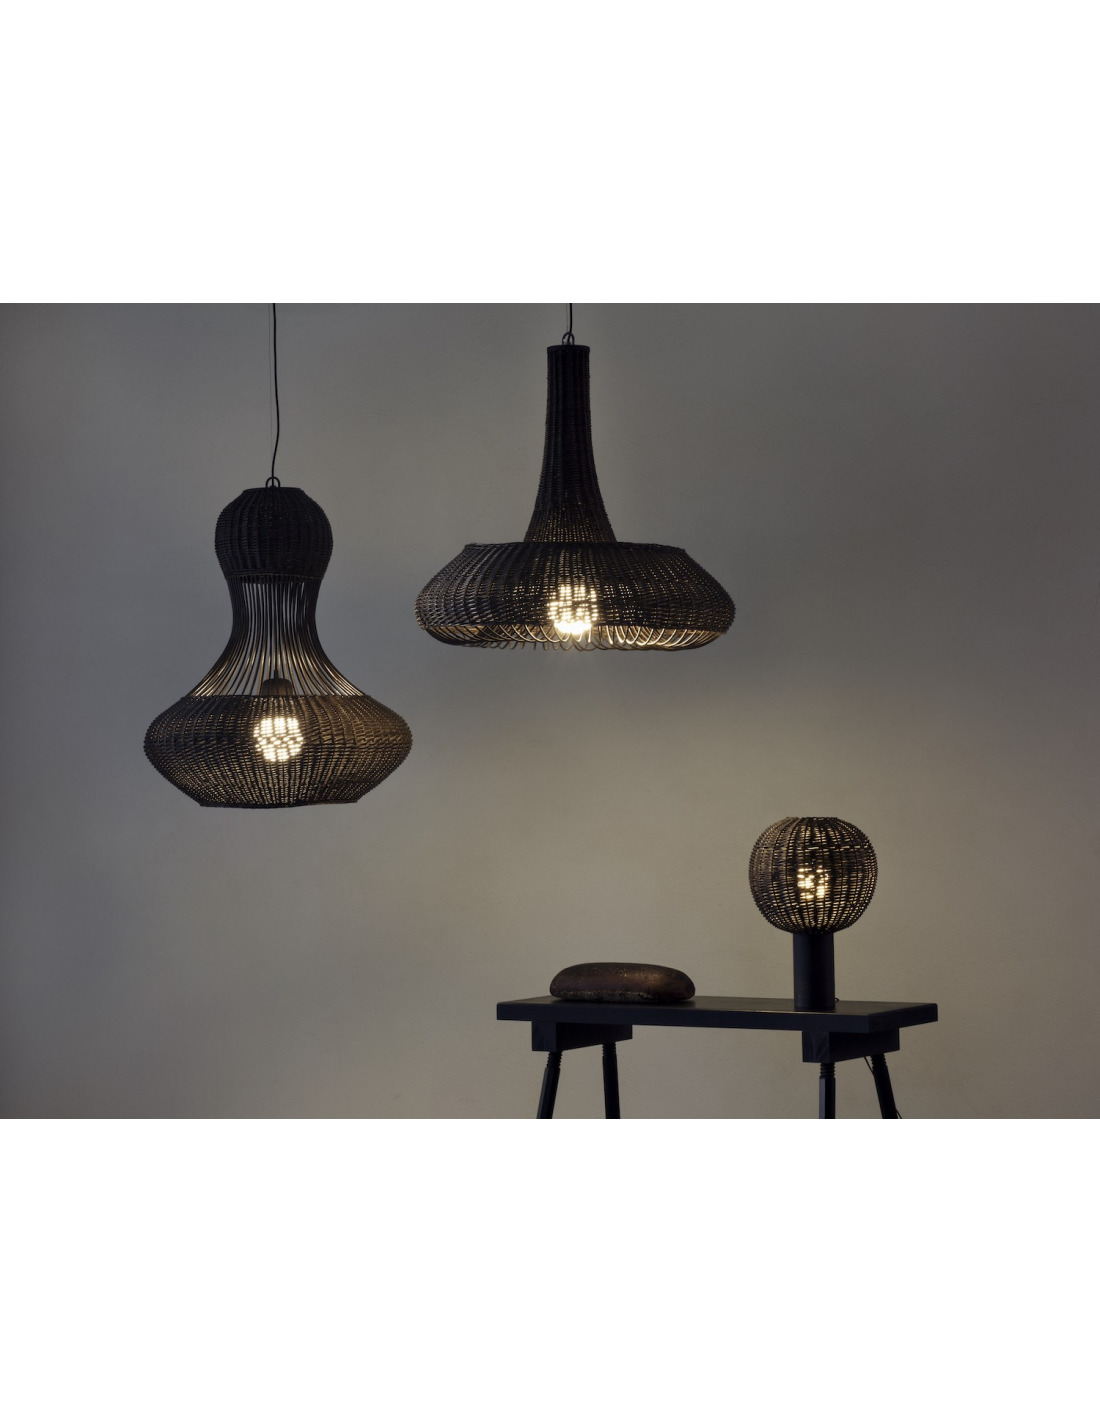 Suspension en osier light of nature 2 au design original otoko - Suspension en osier ...